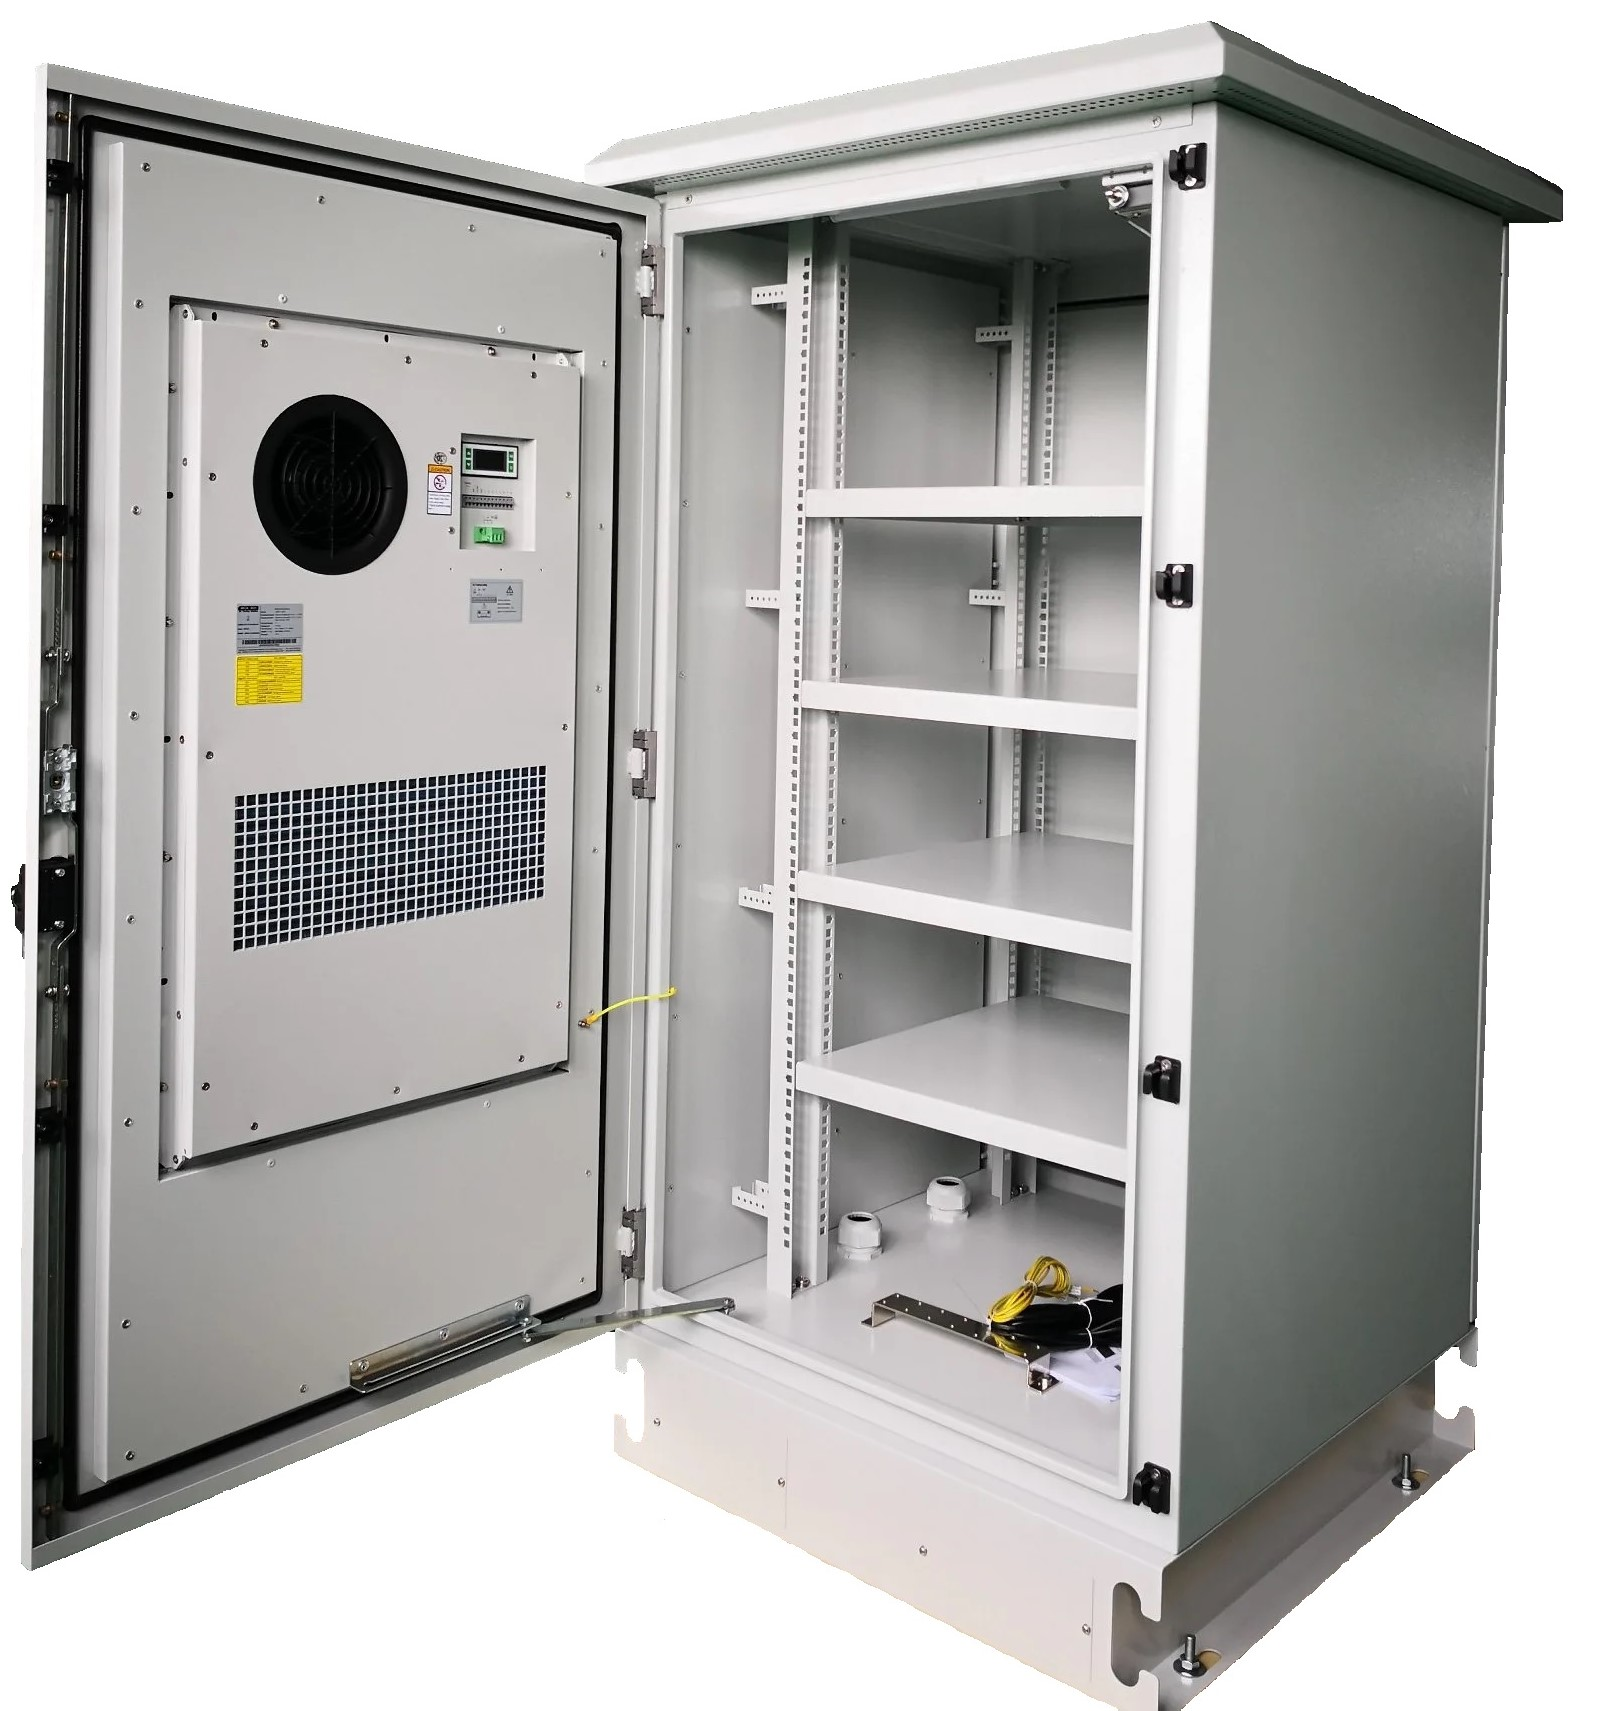 Metal-Outdoor-Cabinet-with-Air-Conditioner-for-Telecom-Use 22